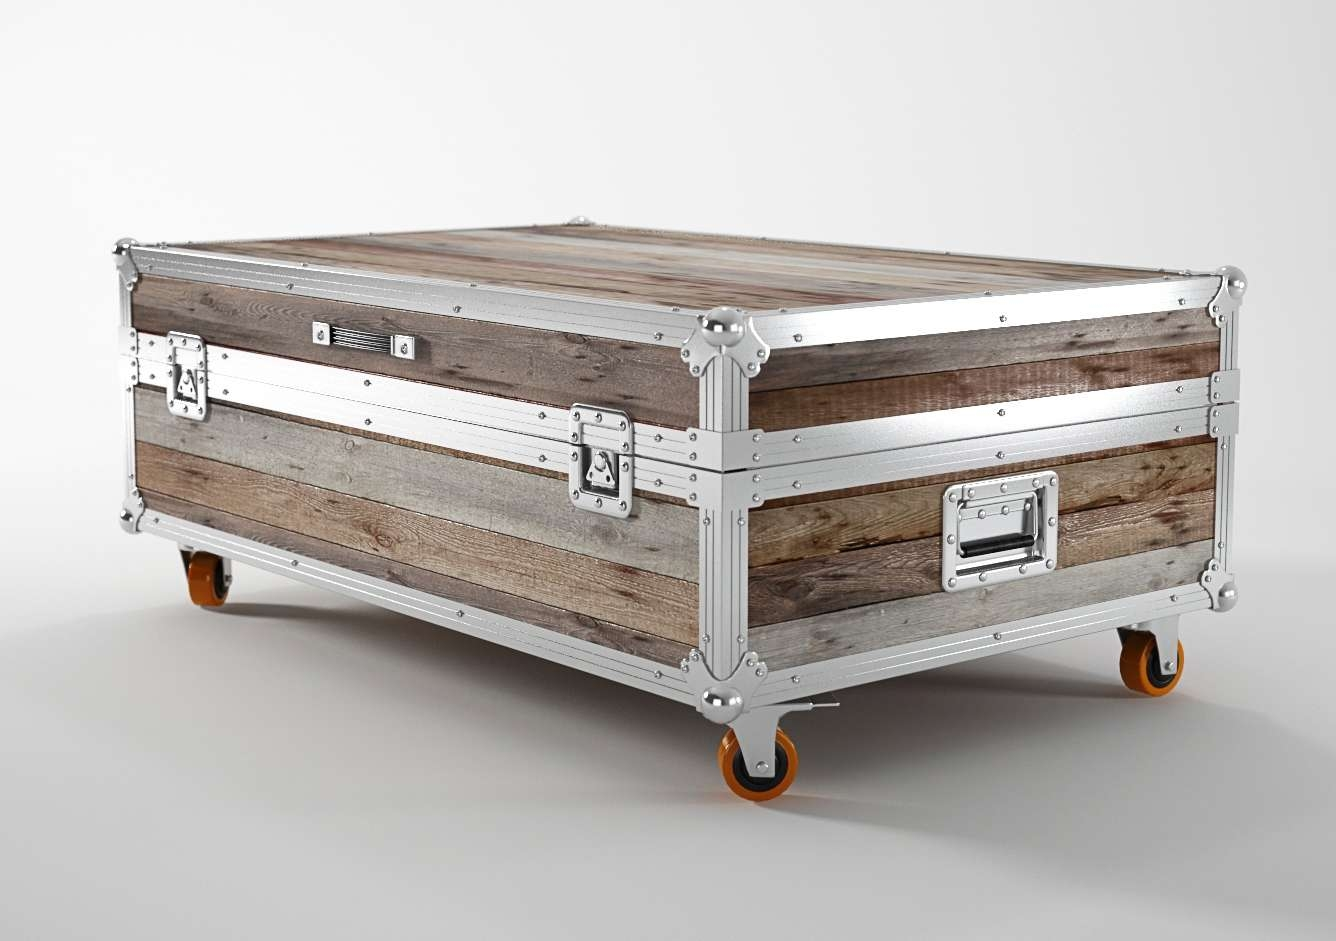 Multifunction Chest Coffee Table – Trunks For Coffee Table Pertaining To 2018 Large Trunk Coffee Tables (View 16 of 20)